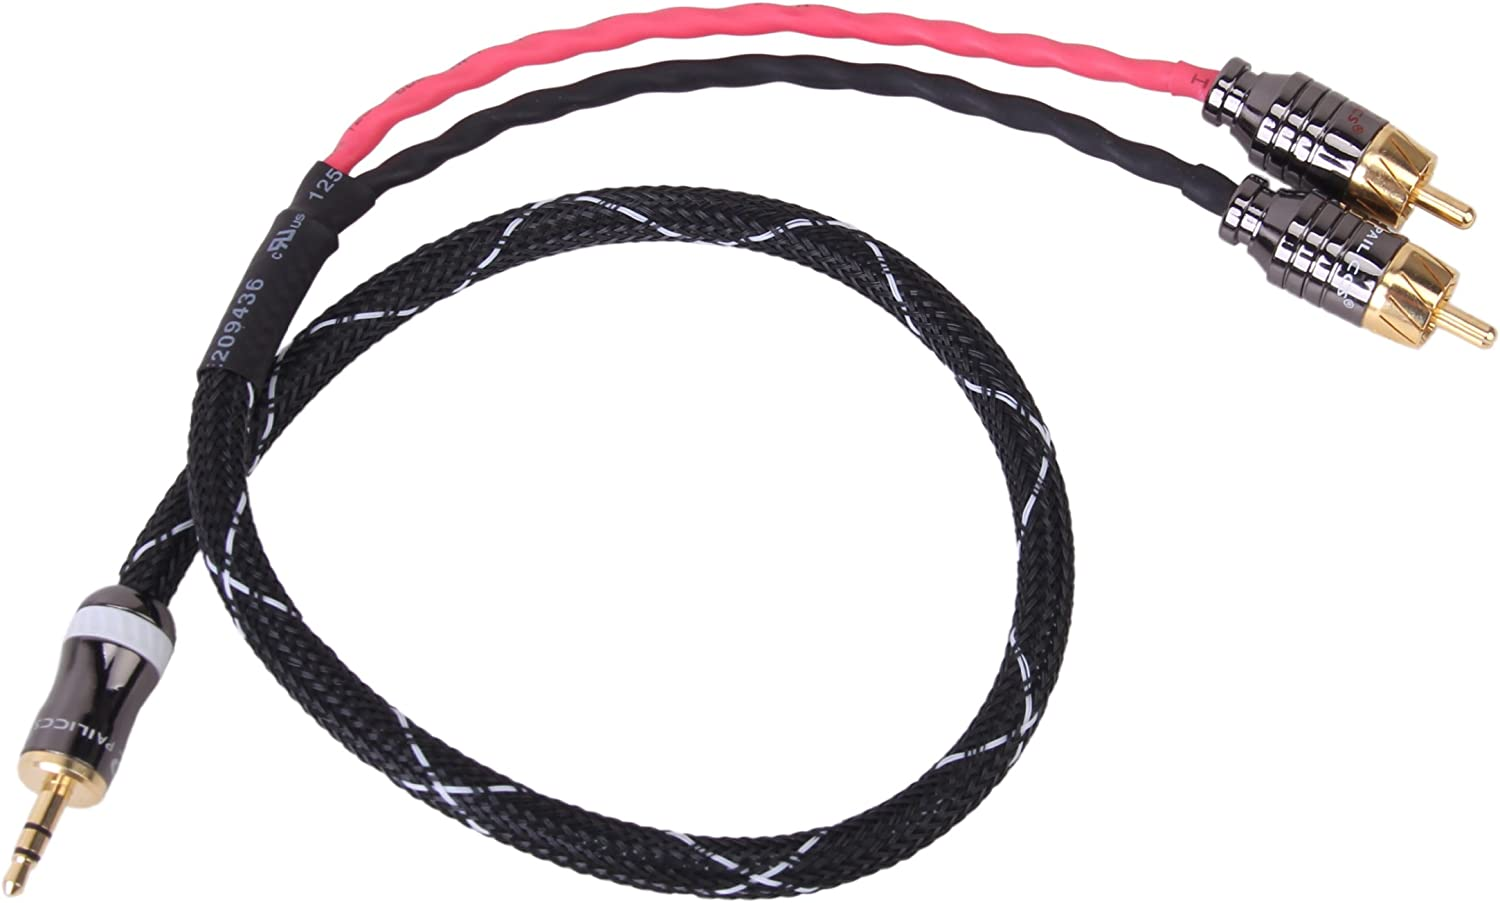 3.5mm to RCA cable 0.5 meter headphone jack